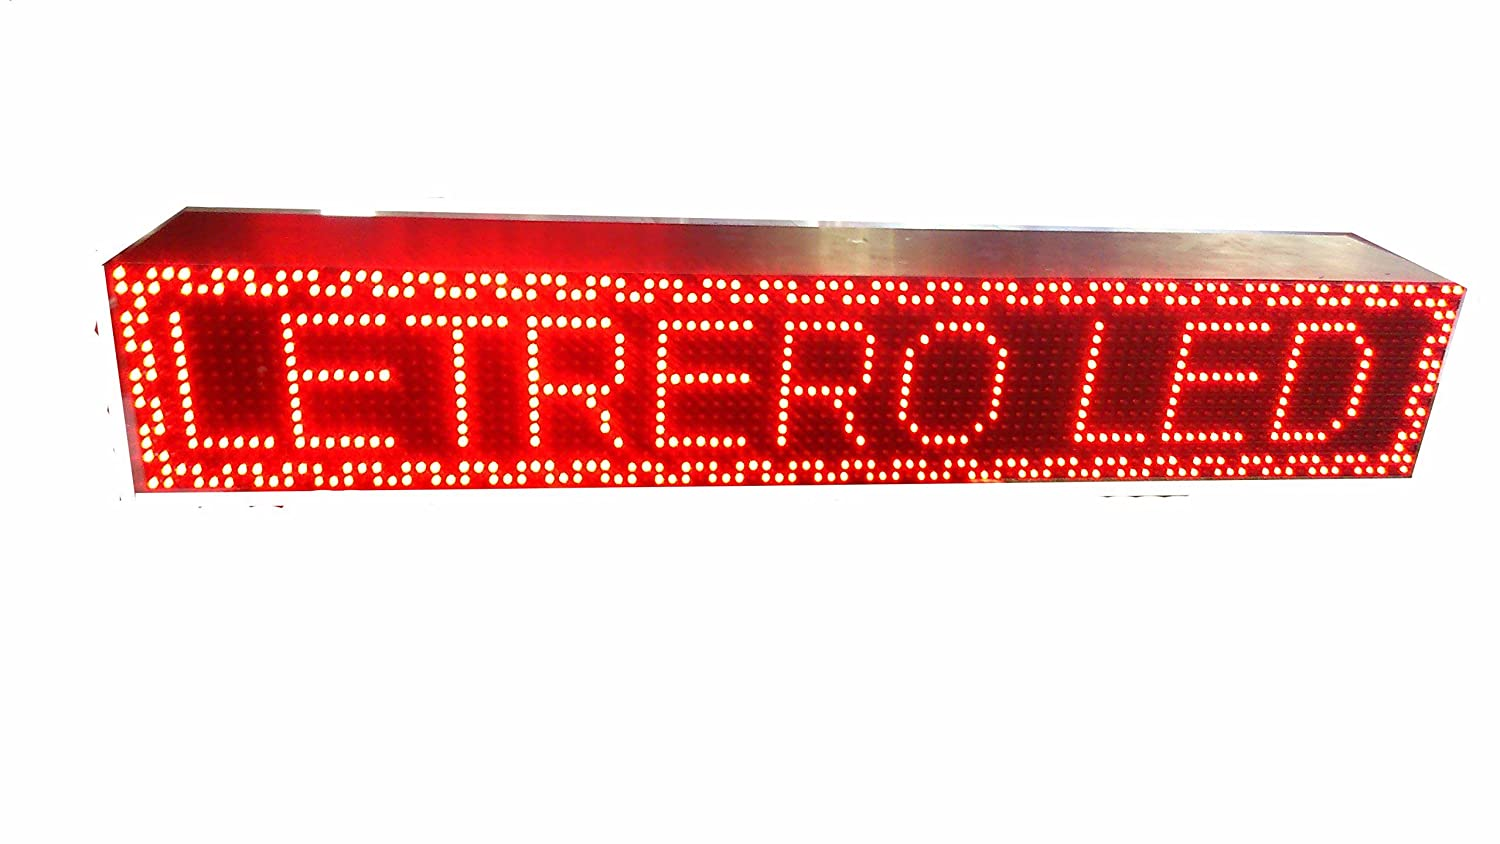 PANTALLA LED PROGRAMABLE PARA EXTERIOR E INTERIOR/LETRERO LUMINOSO/CARTEL/ROTULO LED (96 * 16 cm, ROJO) PROGRAMMABLE LED SIGN PROGRAMMABLE LED DISPLAY